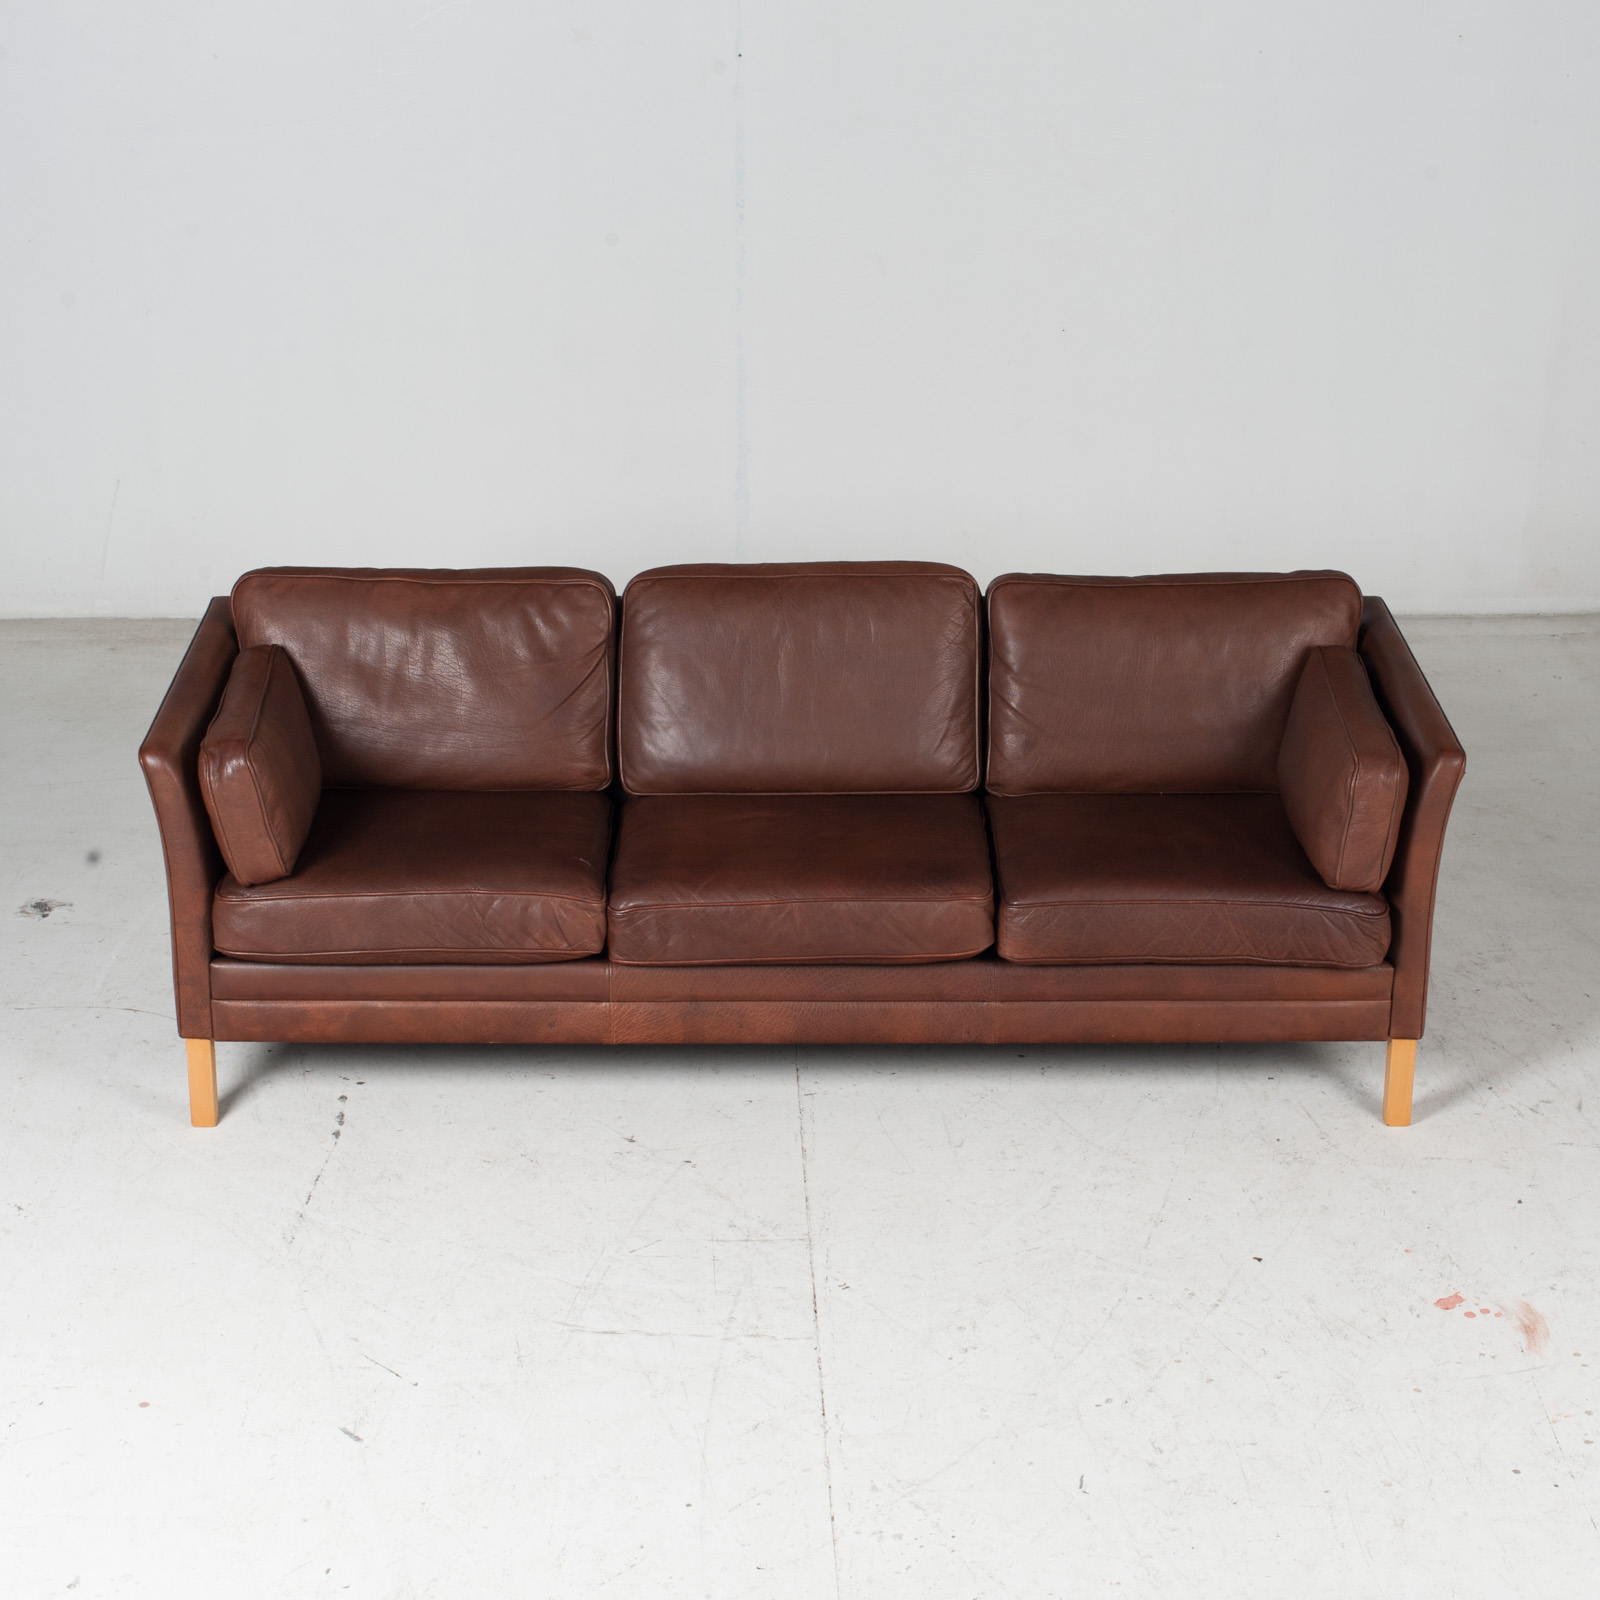 3 Seat Sofa In Brown Leather With Beech Legs 1960s